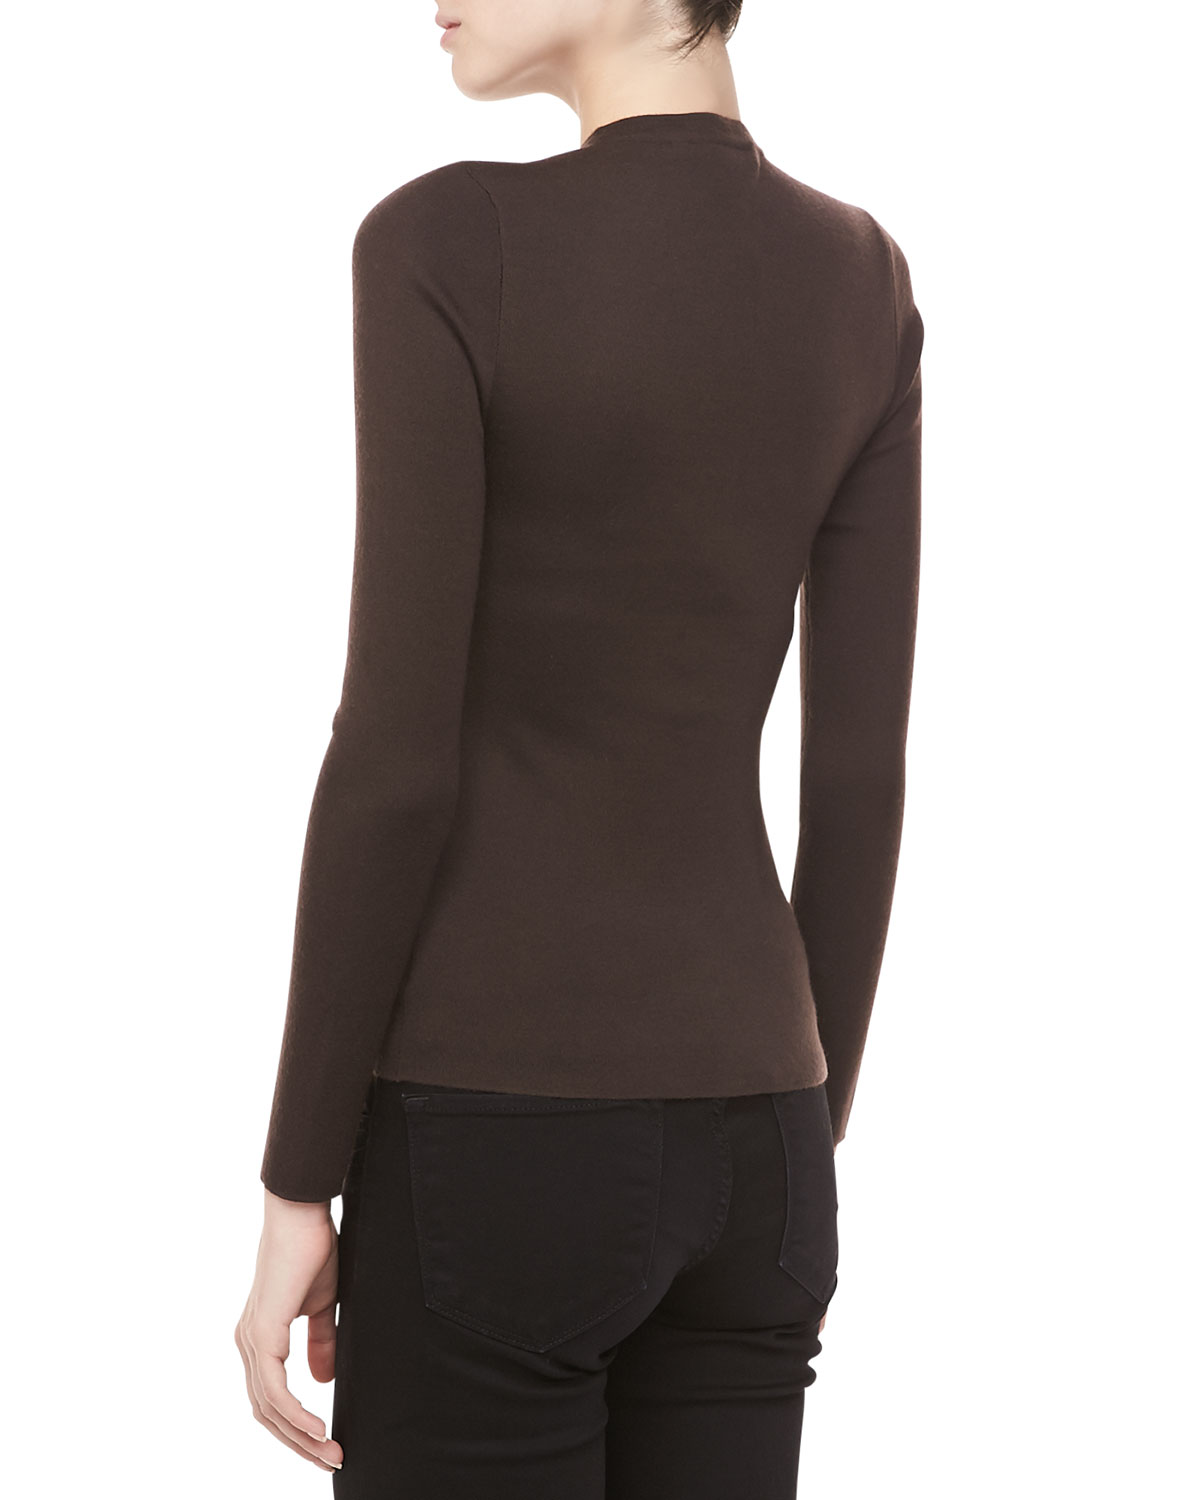 Michael kors Longsleeve Cashmere Sweater Chocolate in Brown | Lyst